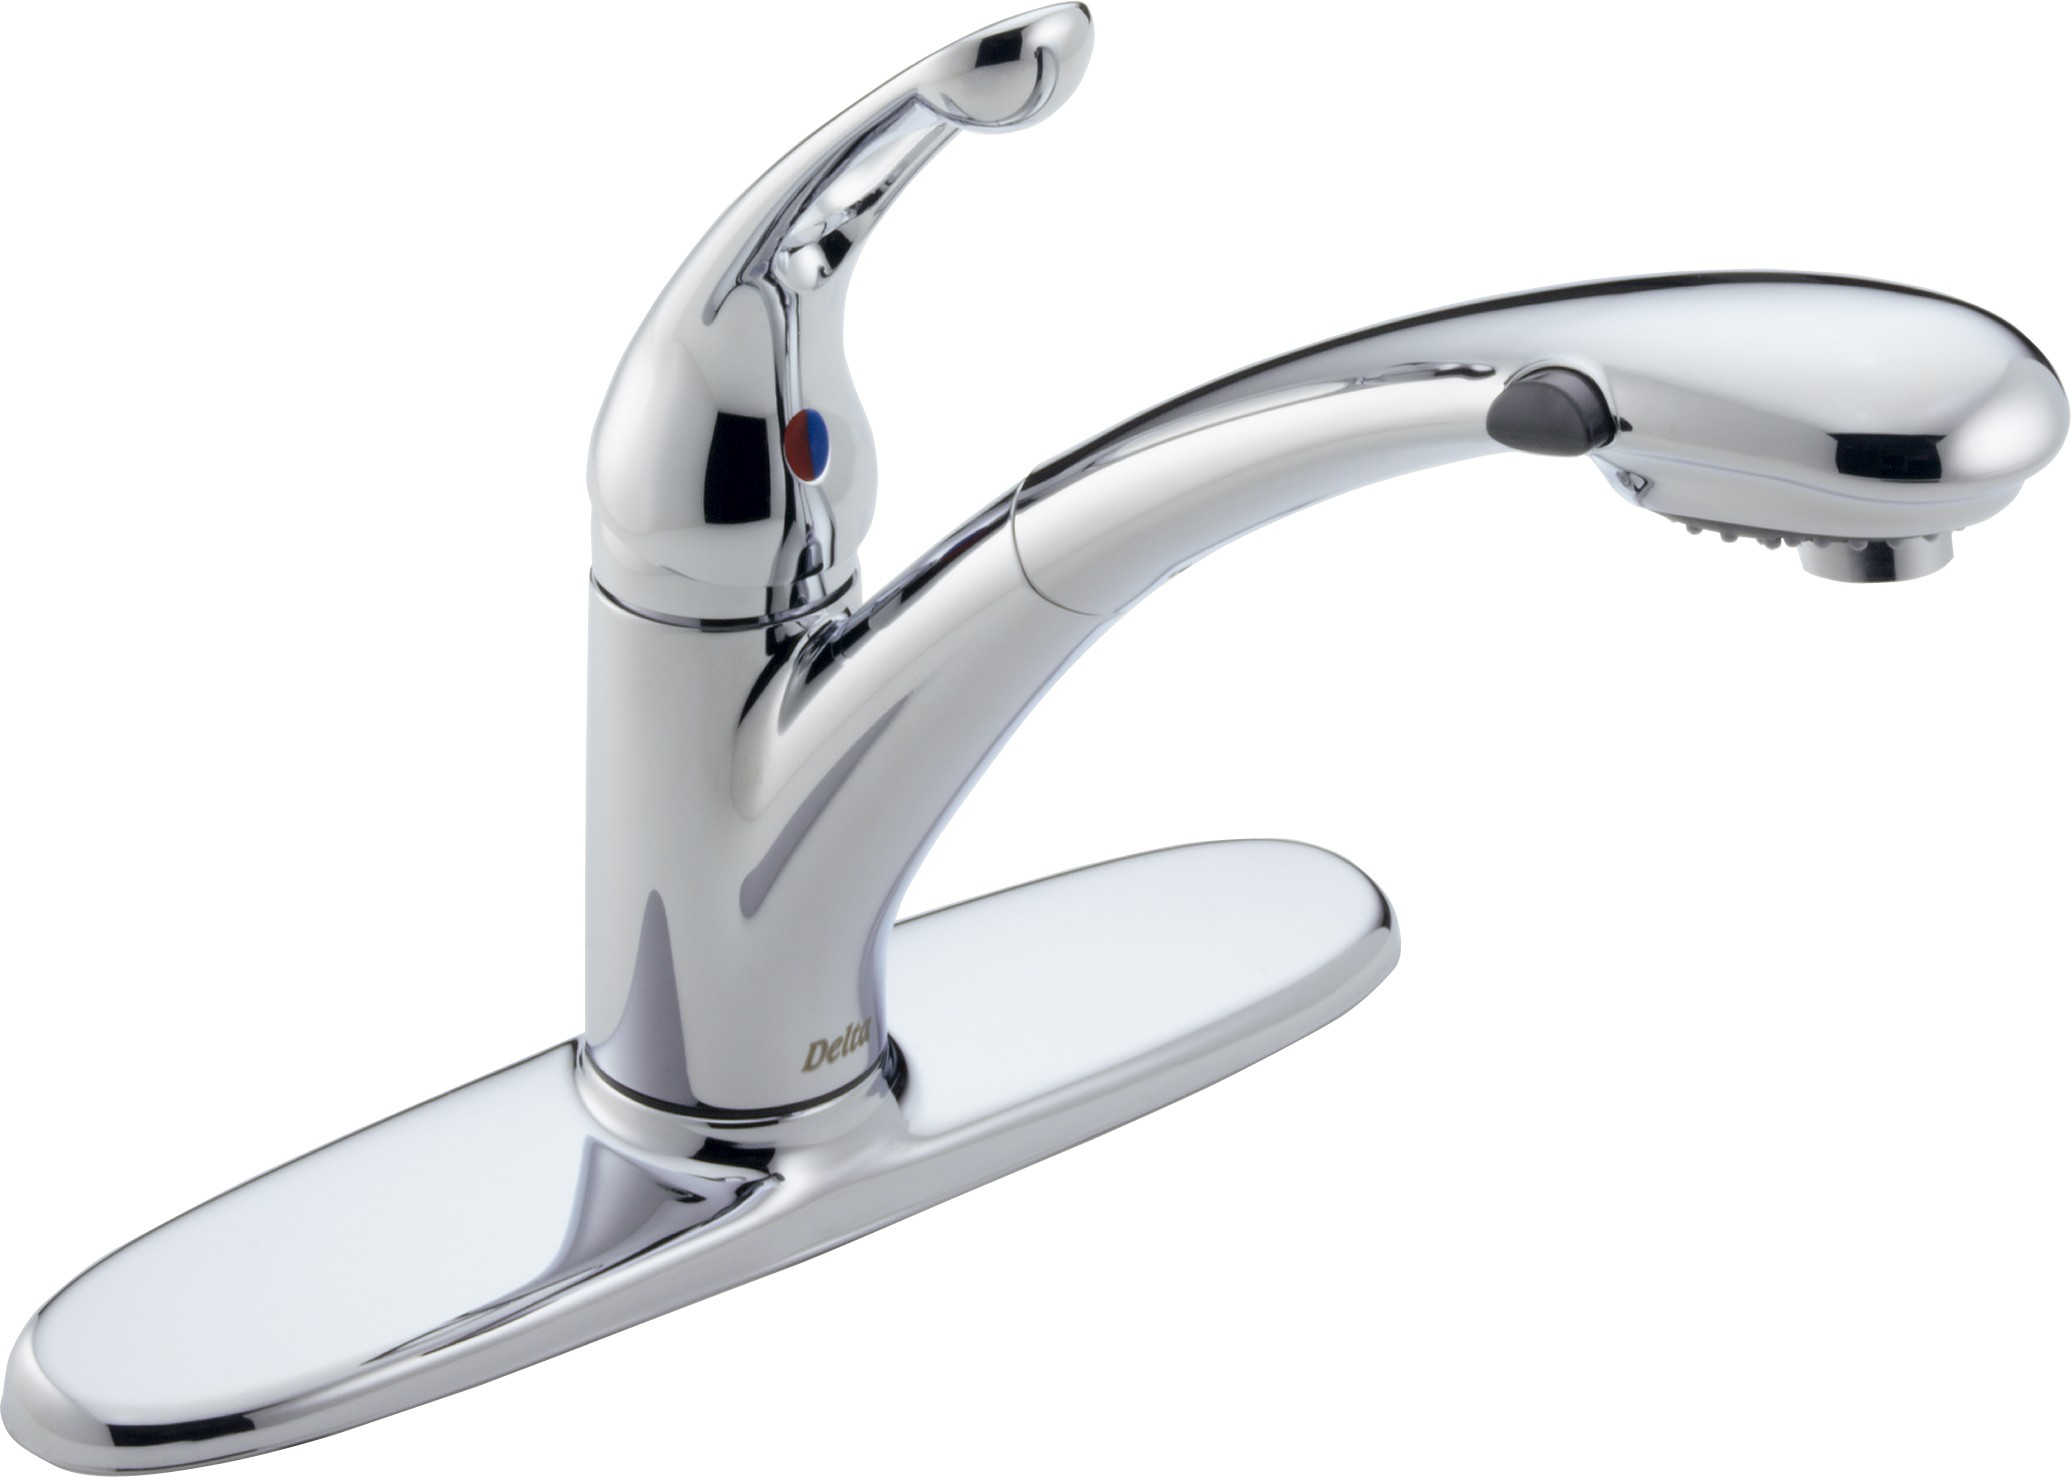 American Kitchen Faucet Replacement Parts